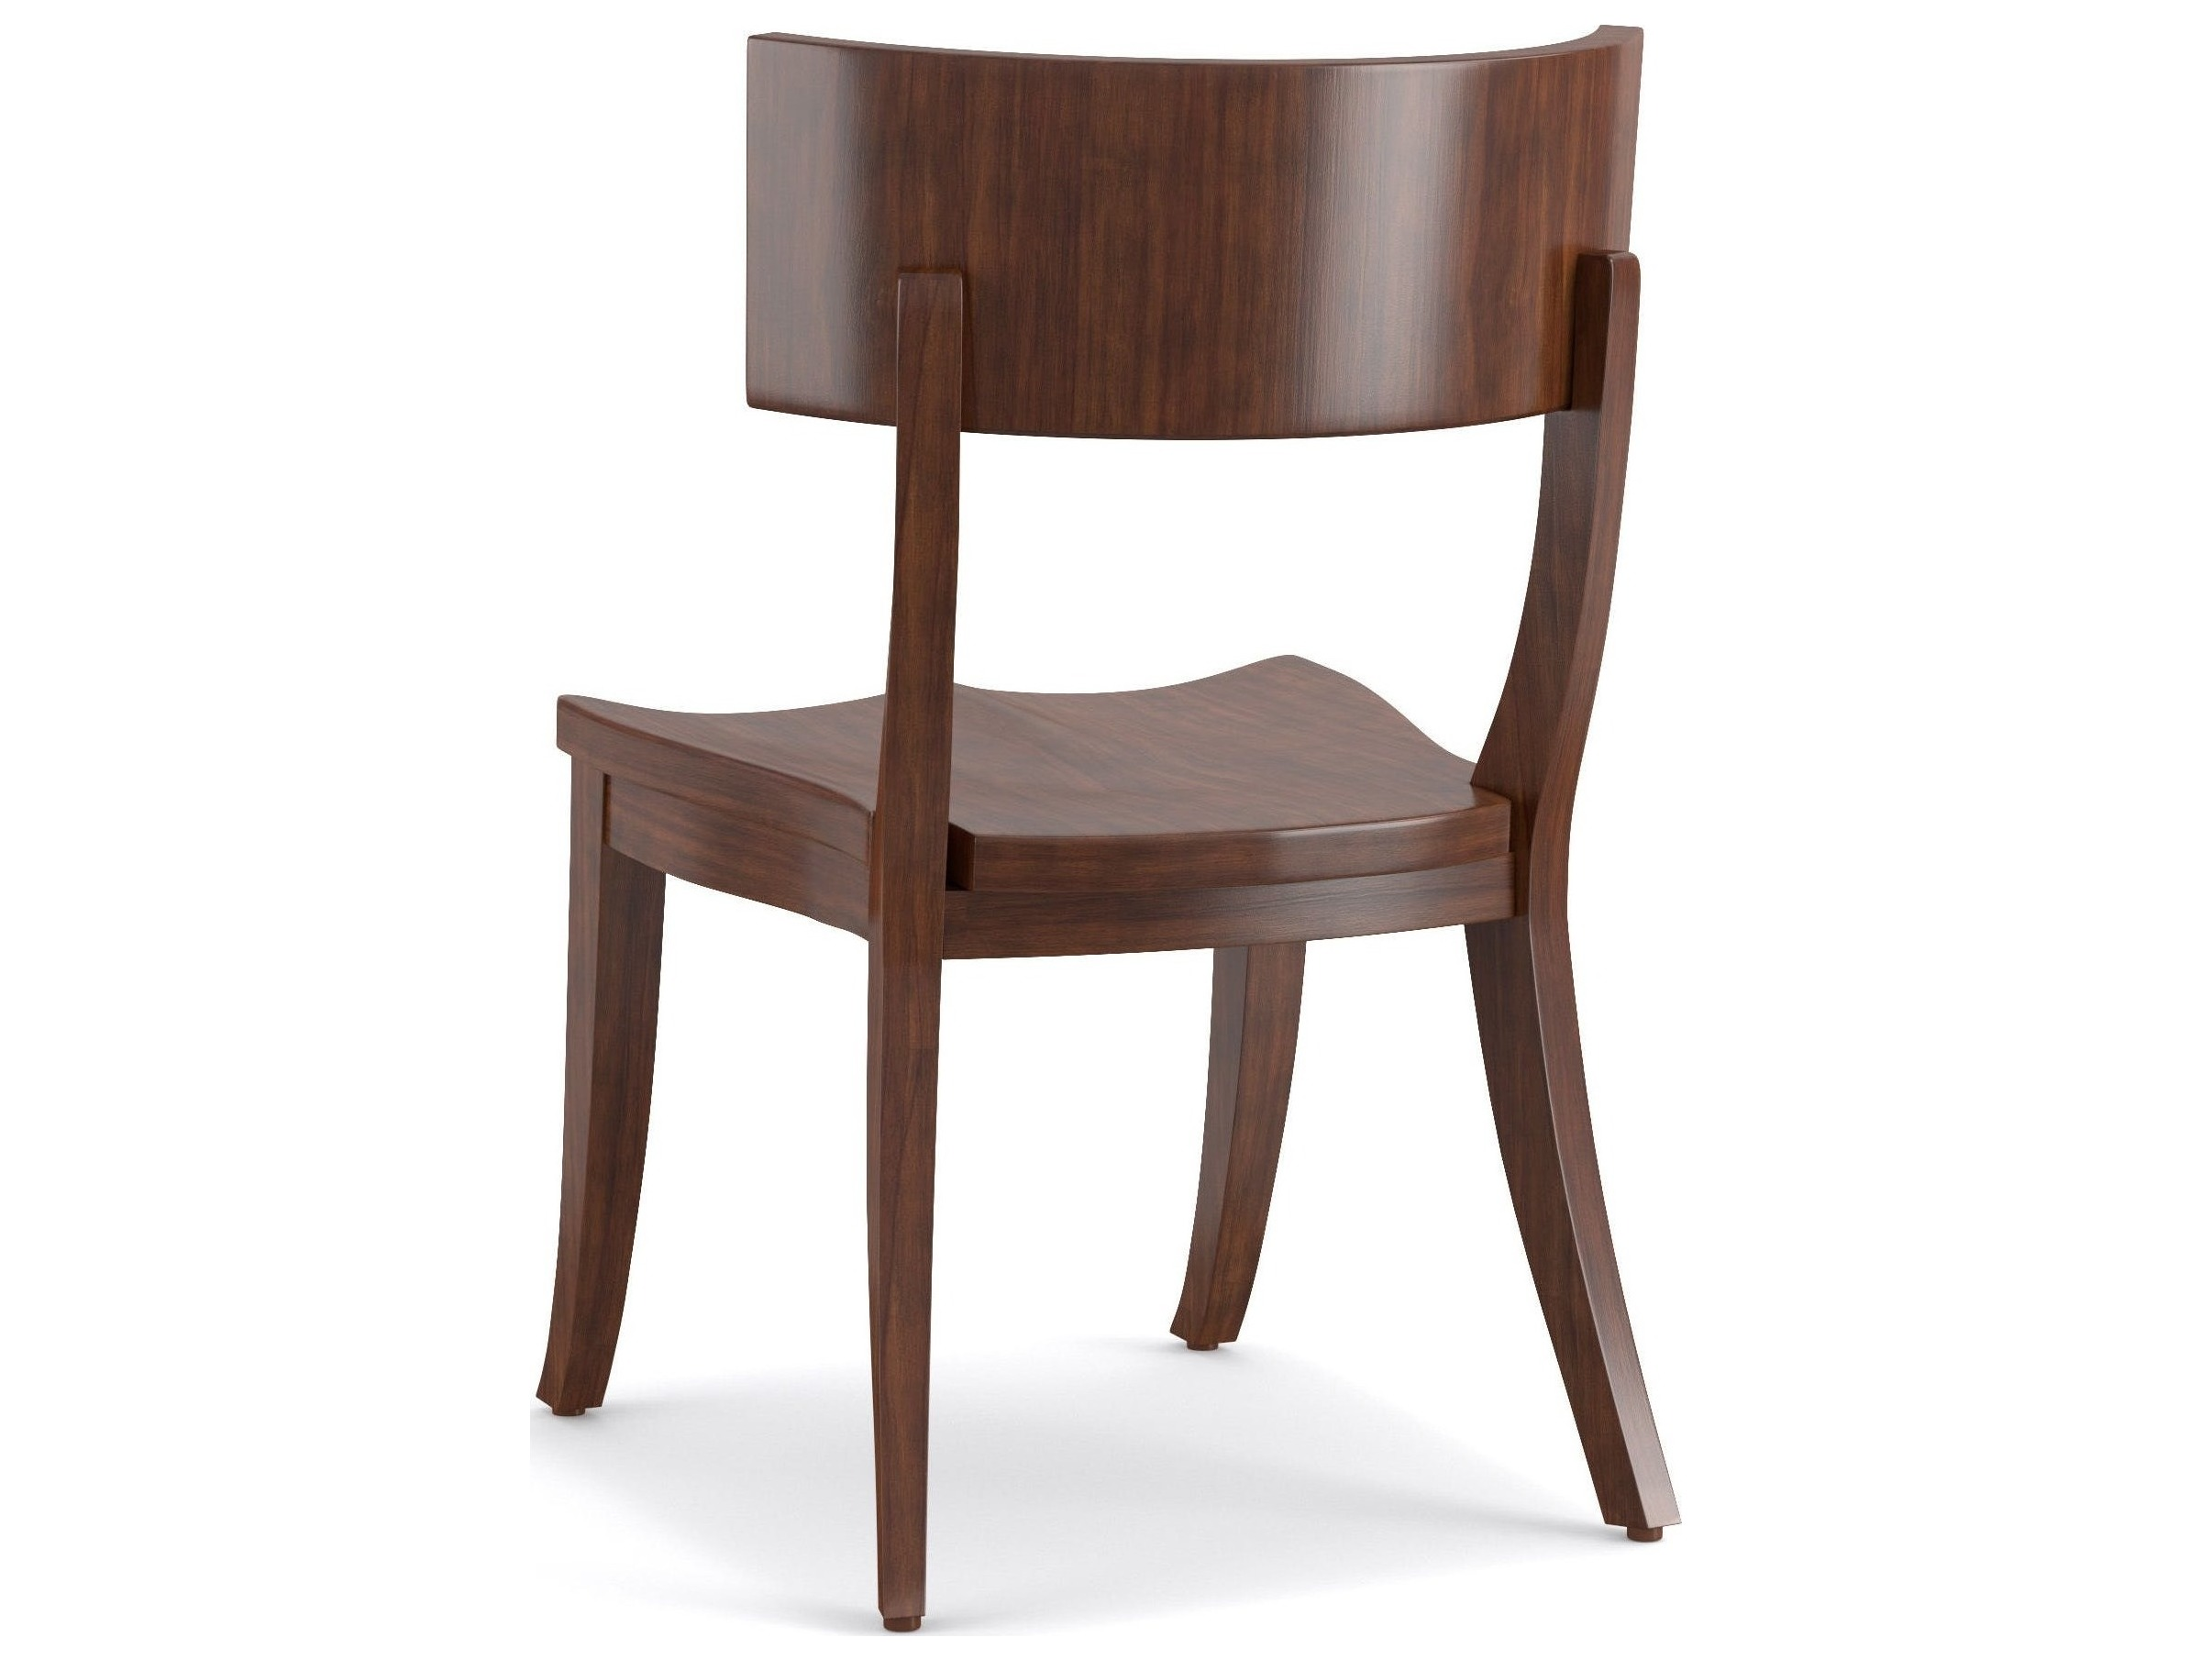 Furniture Cynthia Rowley Mozambique Scoop Wood Klismos Dining Side Chair Sold In 2